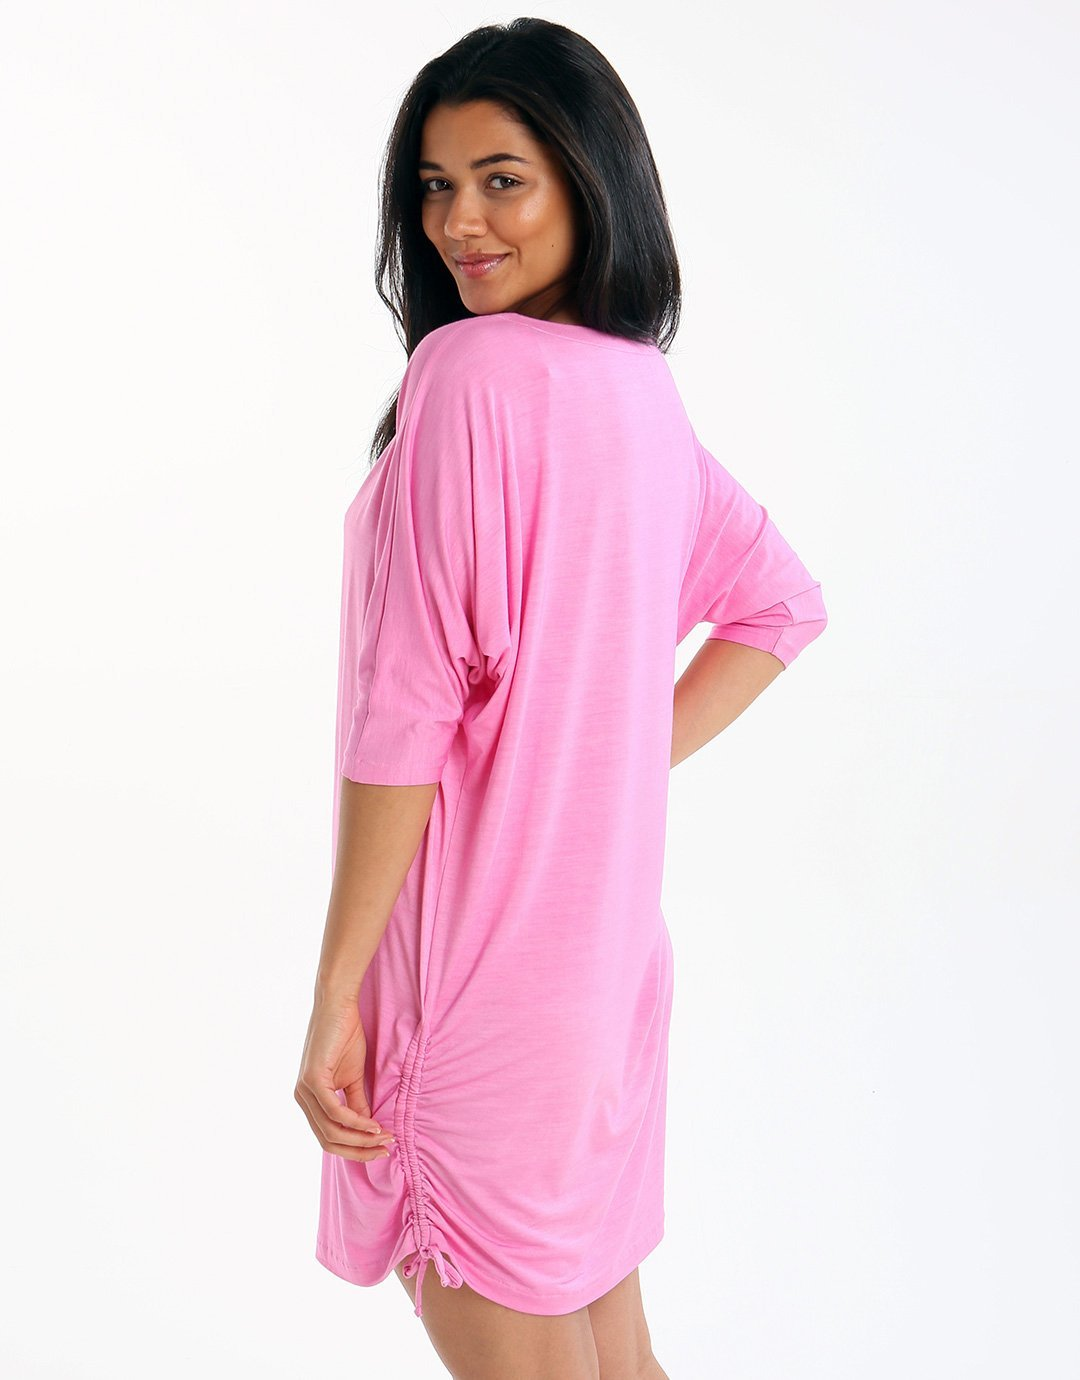 Roidal Ceylan Lidiana Dress - Pink